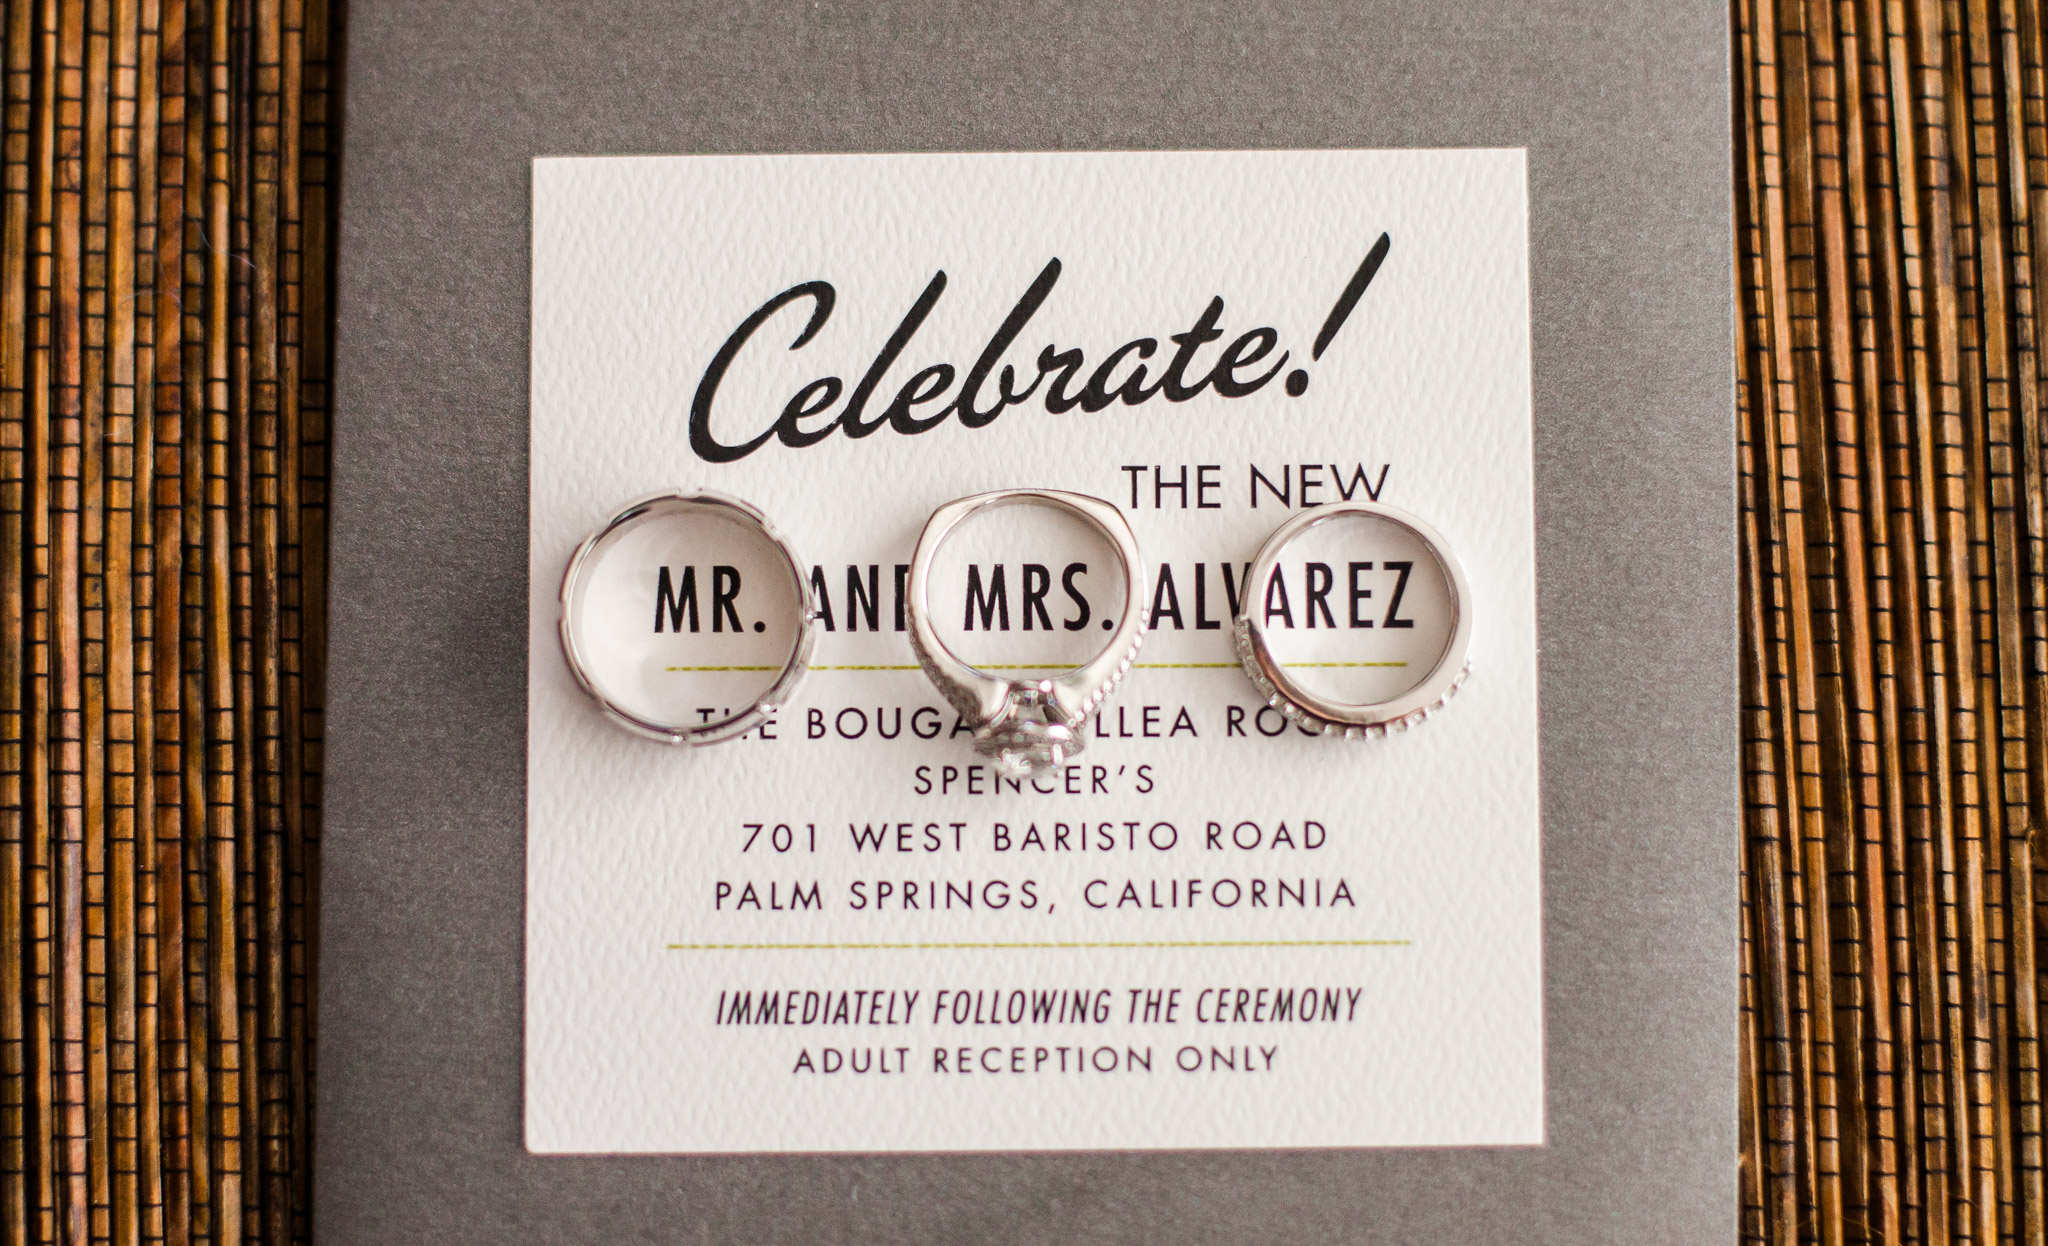 Los Angeles Wedding Invitations: Los Angeles Wedding Photography Palm Springs Wedding